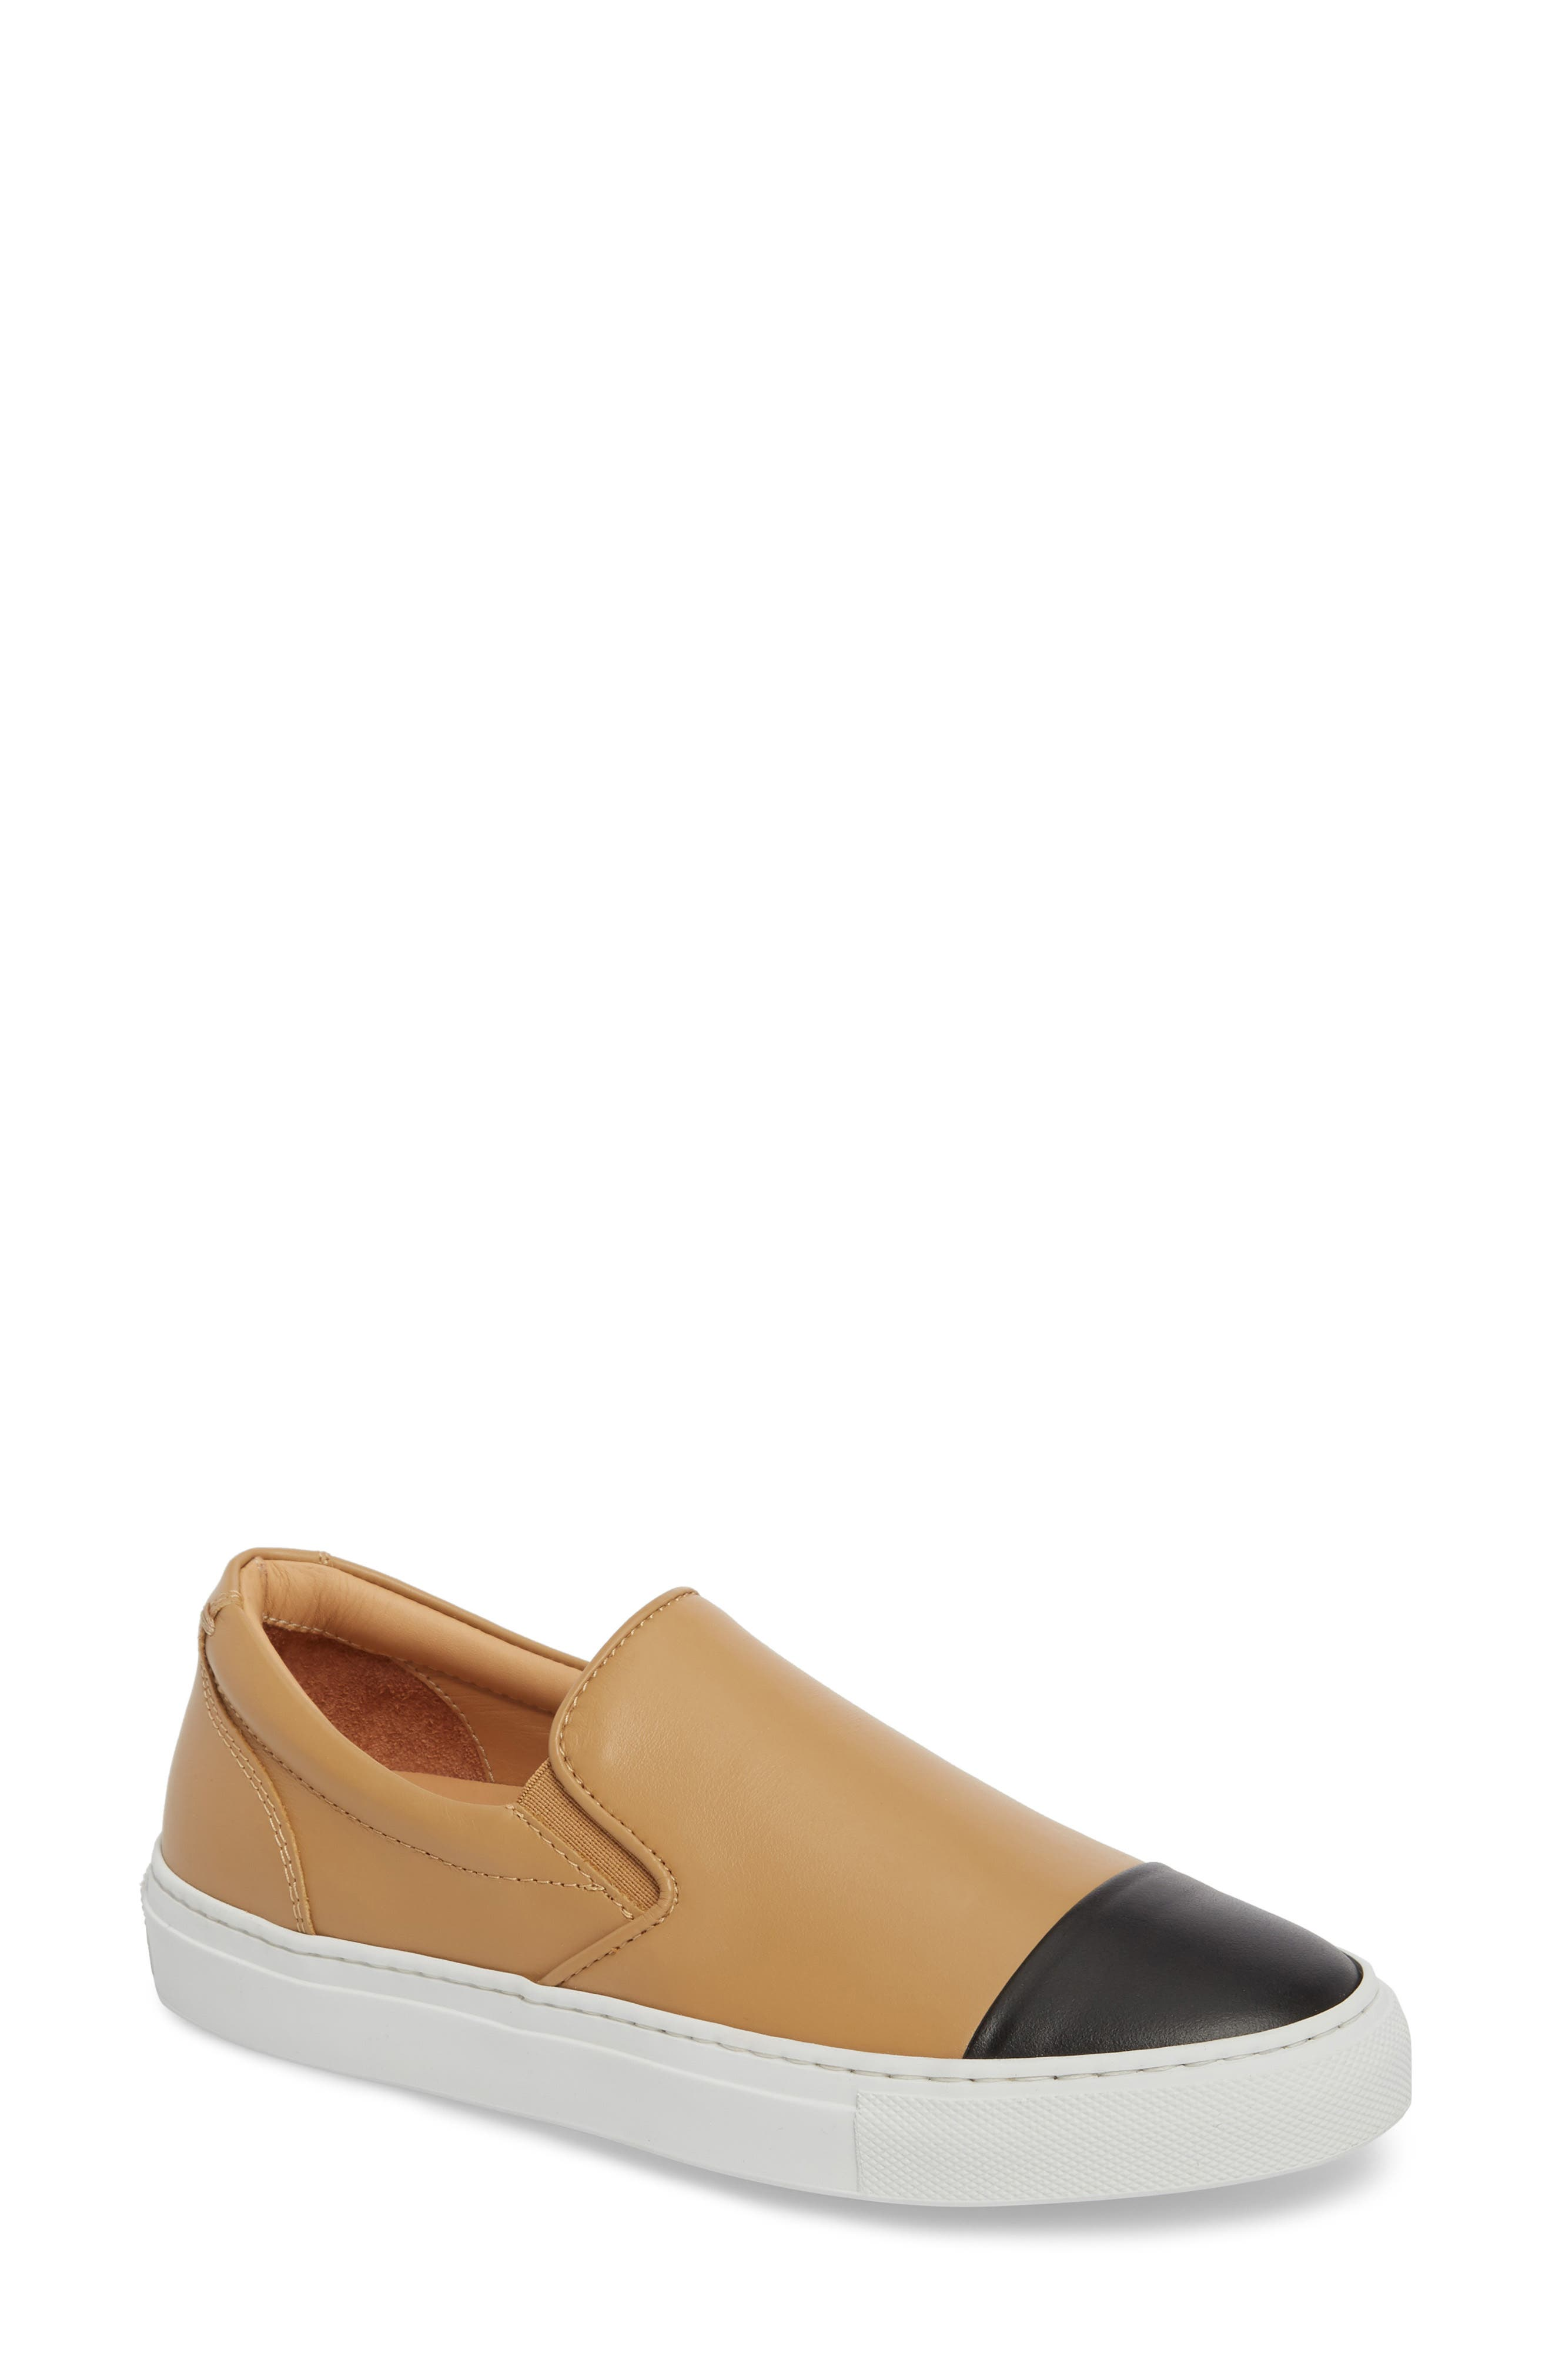 Wooster Cap Toe Slip-On Sneaker,                             Main thumbnail 1, color,                             Almond